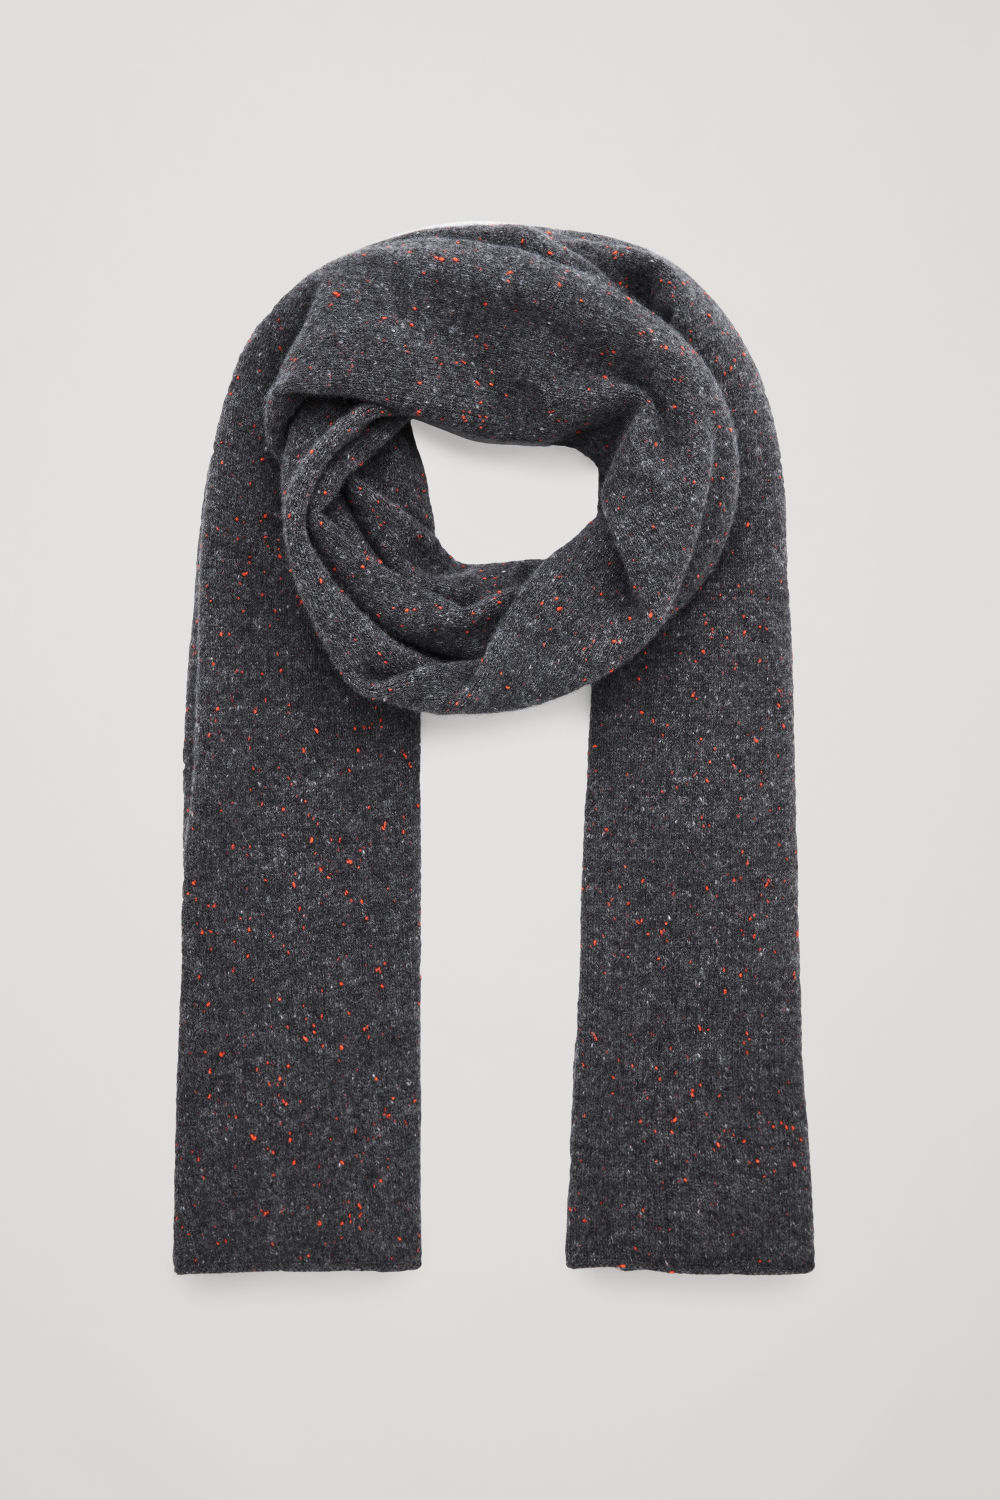 코스 COS SPECKLED CASHMERE SCARF,Dark grey \/ red